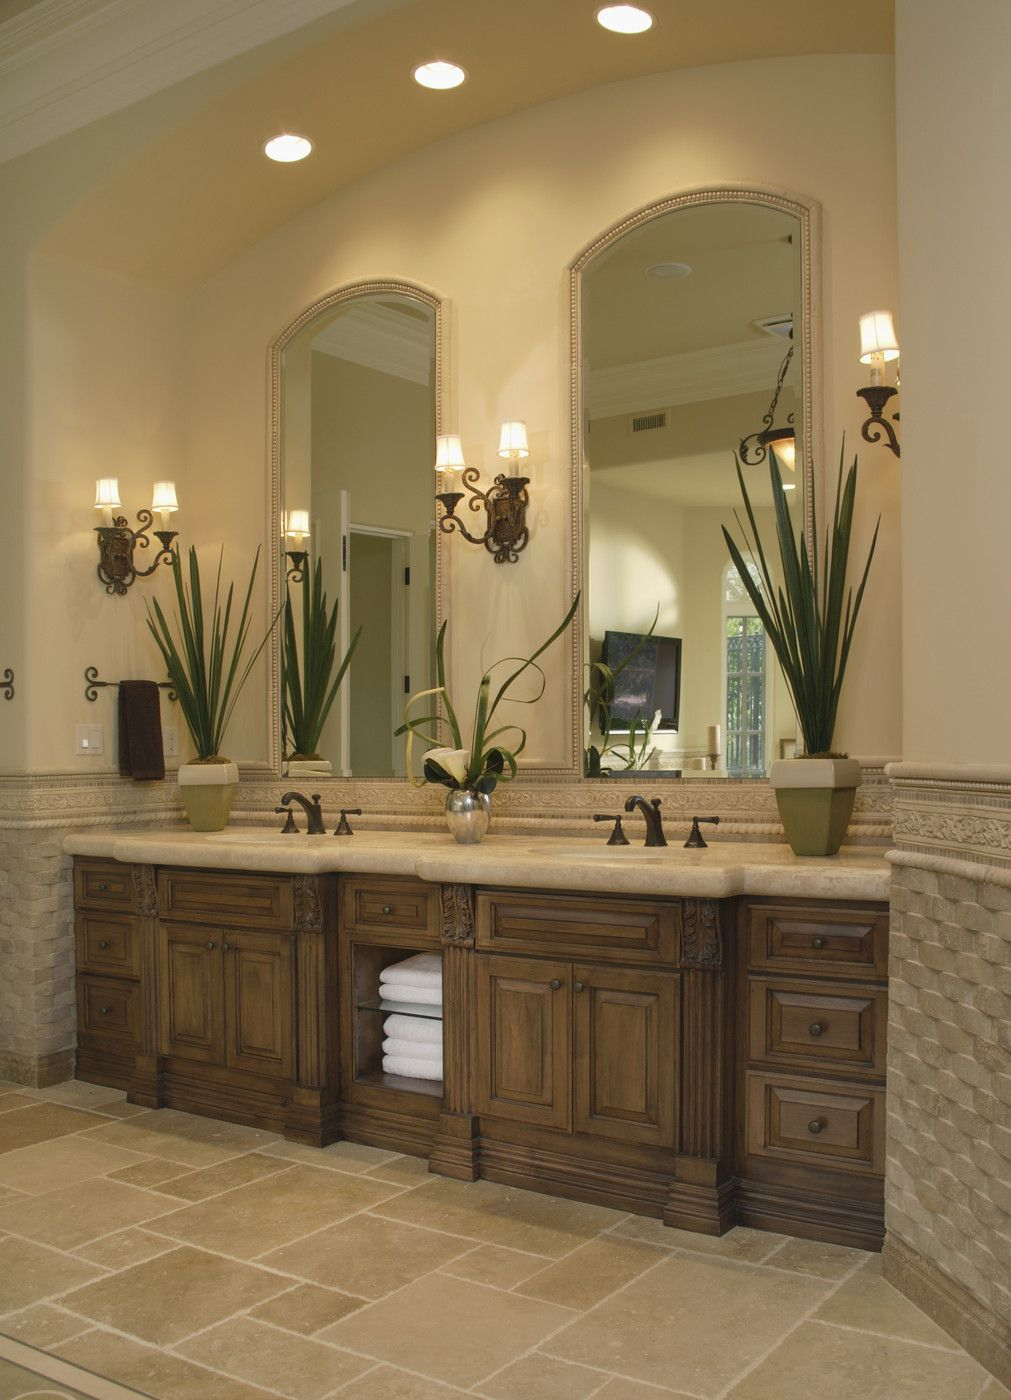 Rise And Shine Bathroom Vanity Lighting Tips - Bathroom vanity lights with shades